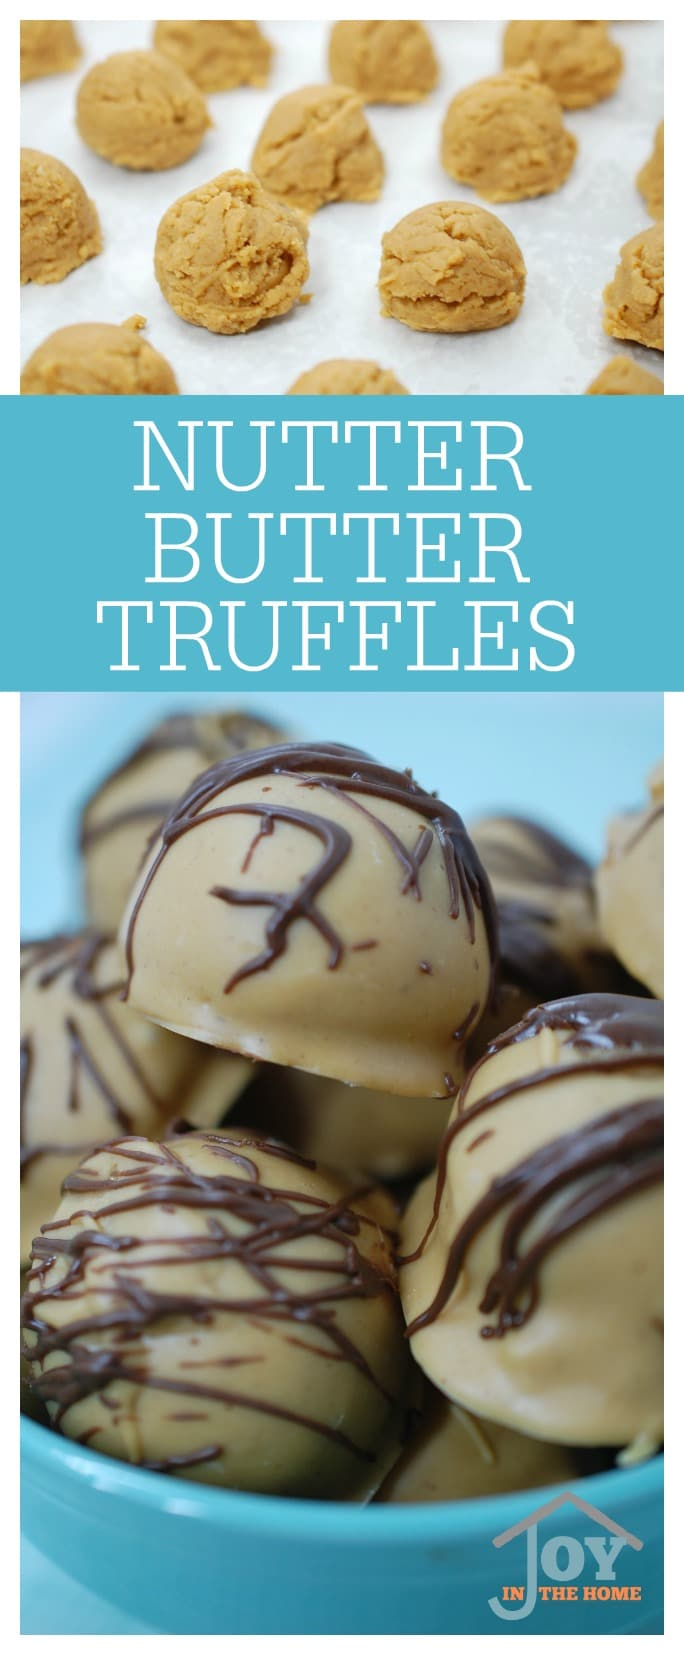 Nutter Butter Truffles - Easy to make, and deliciously moist! | www.joyinthehome.com